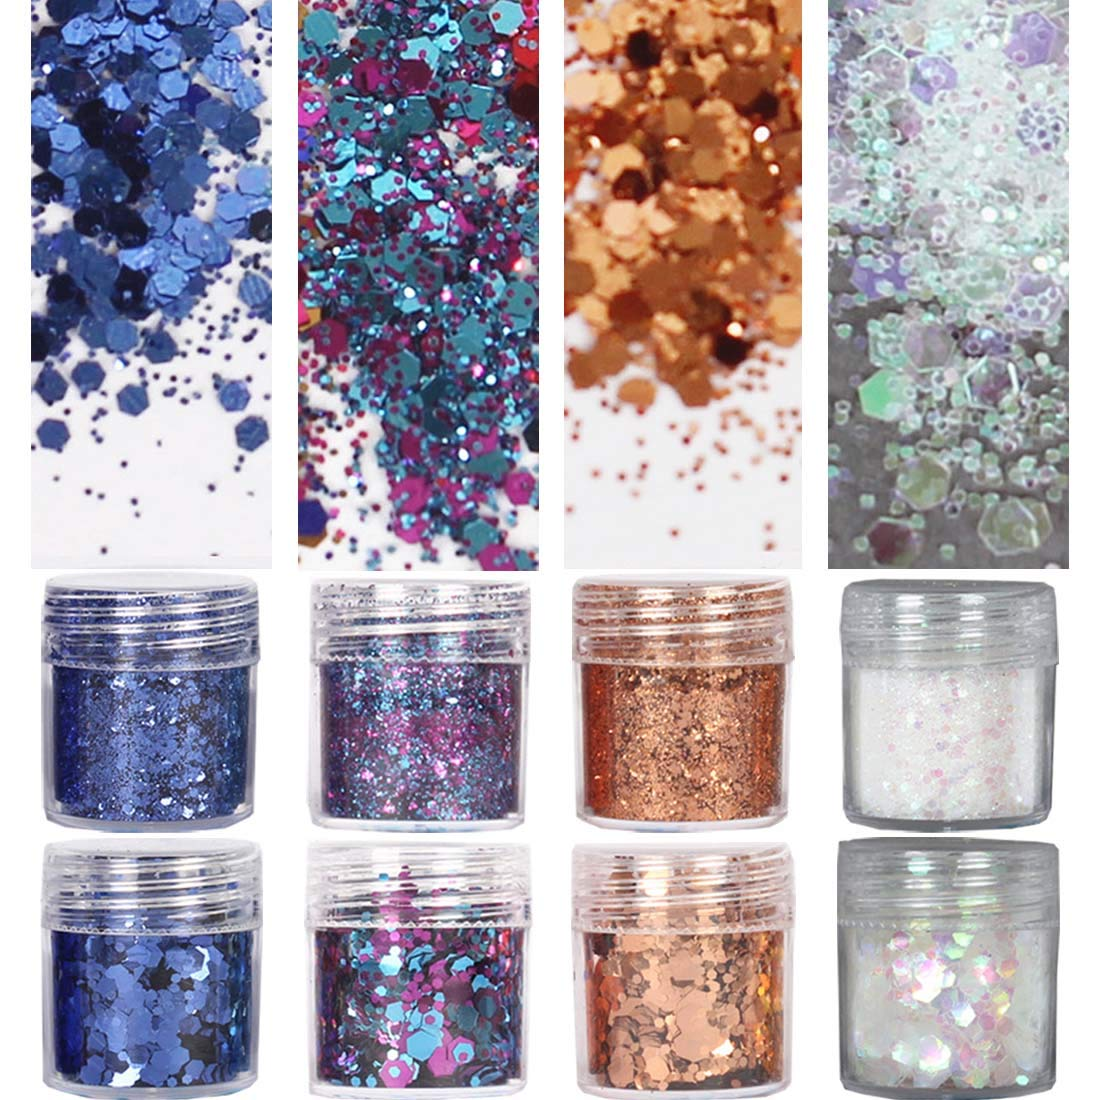 COKOHAPPY 8 Boxes Shimmer Chunky Glitter Makeup, Nail Art Holographic Flake Cosmetic Sequins Glitter, Ultra-thin Face Glitter Iridescent Sparkle Mixed for Body Hair